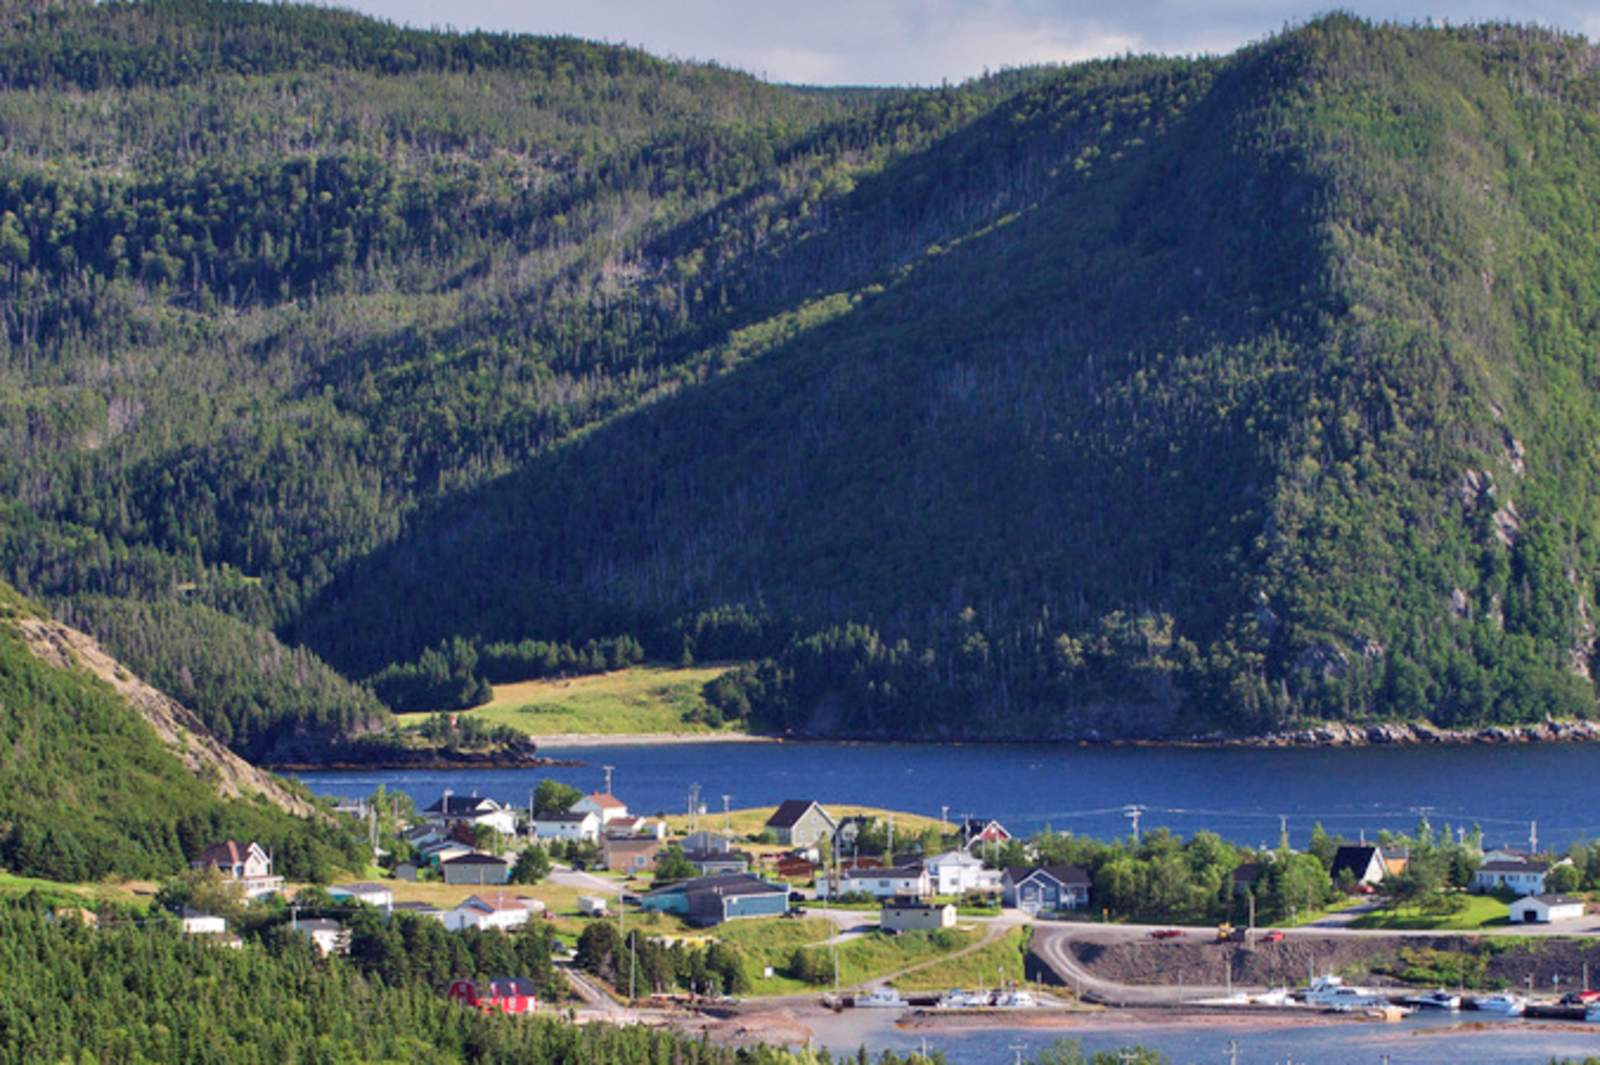 Norris Point in der Naehe des Gros Morne National Park